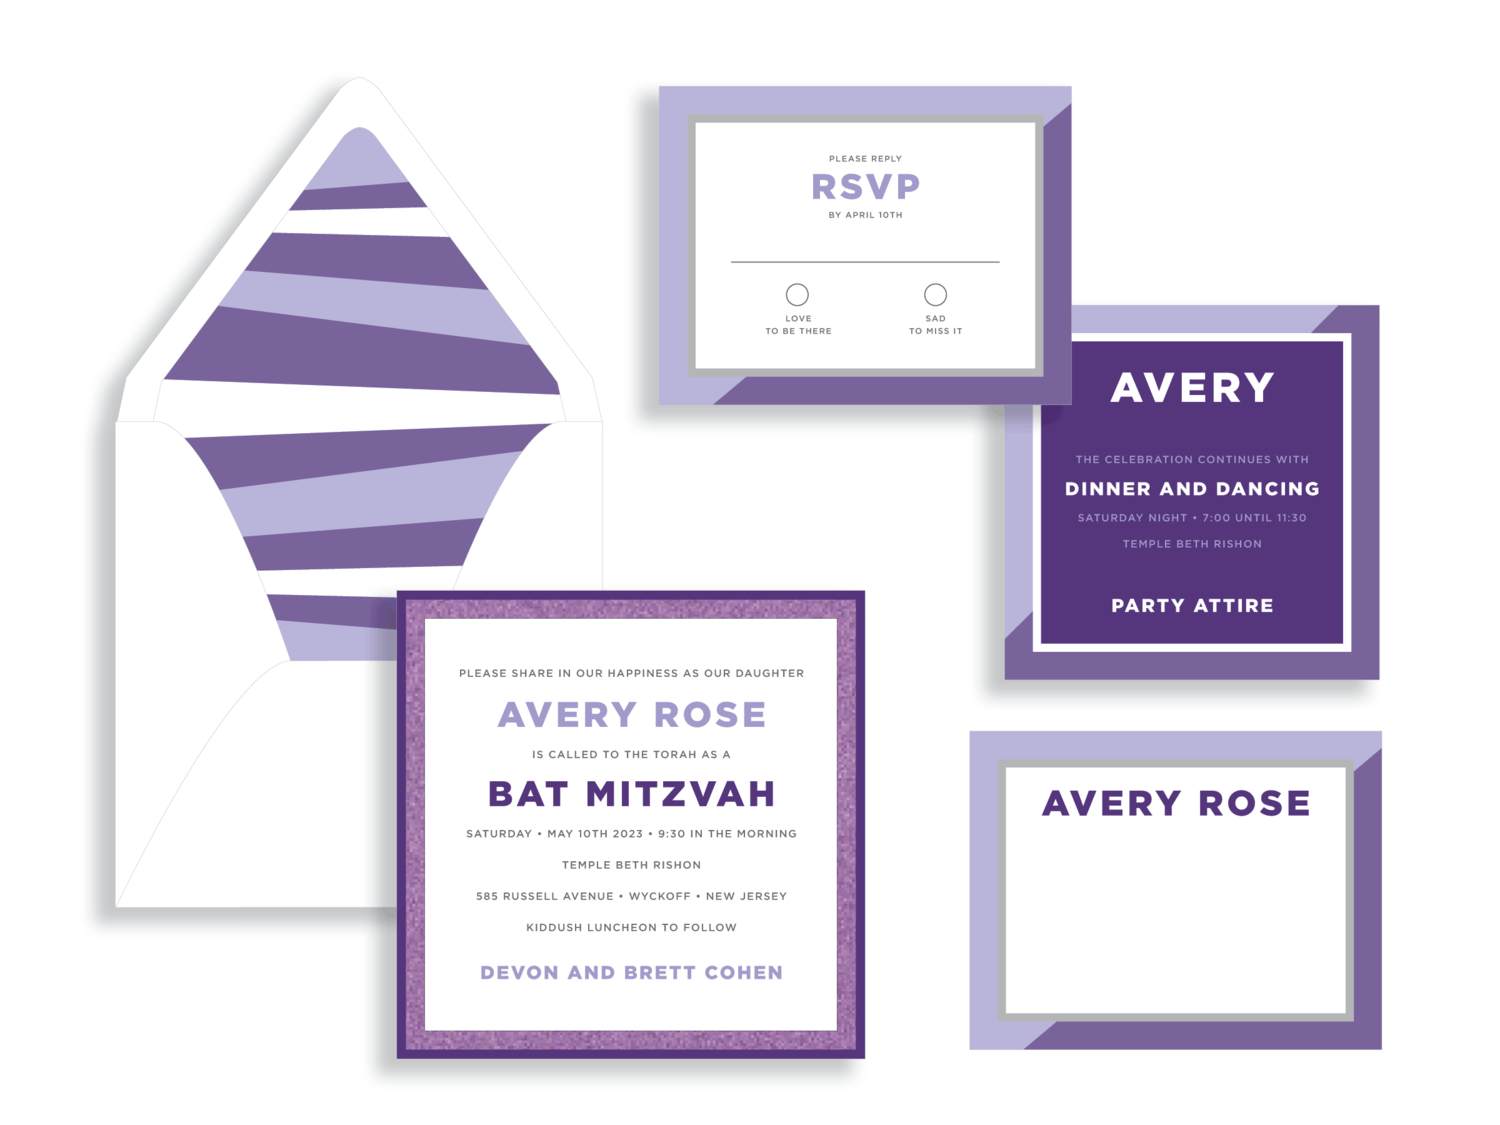 Avery purple glitter bat mitzvah invitation in Fairfax Virginia from Staccato with personalized service, great selection!